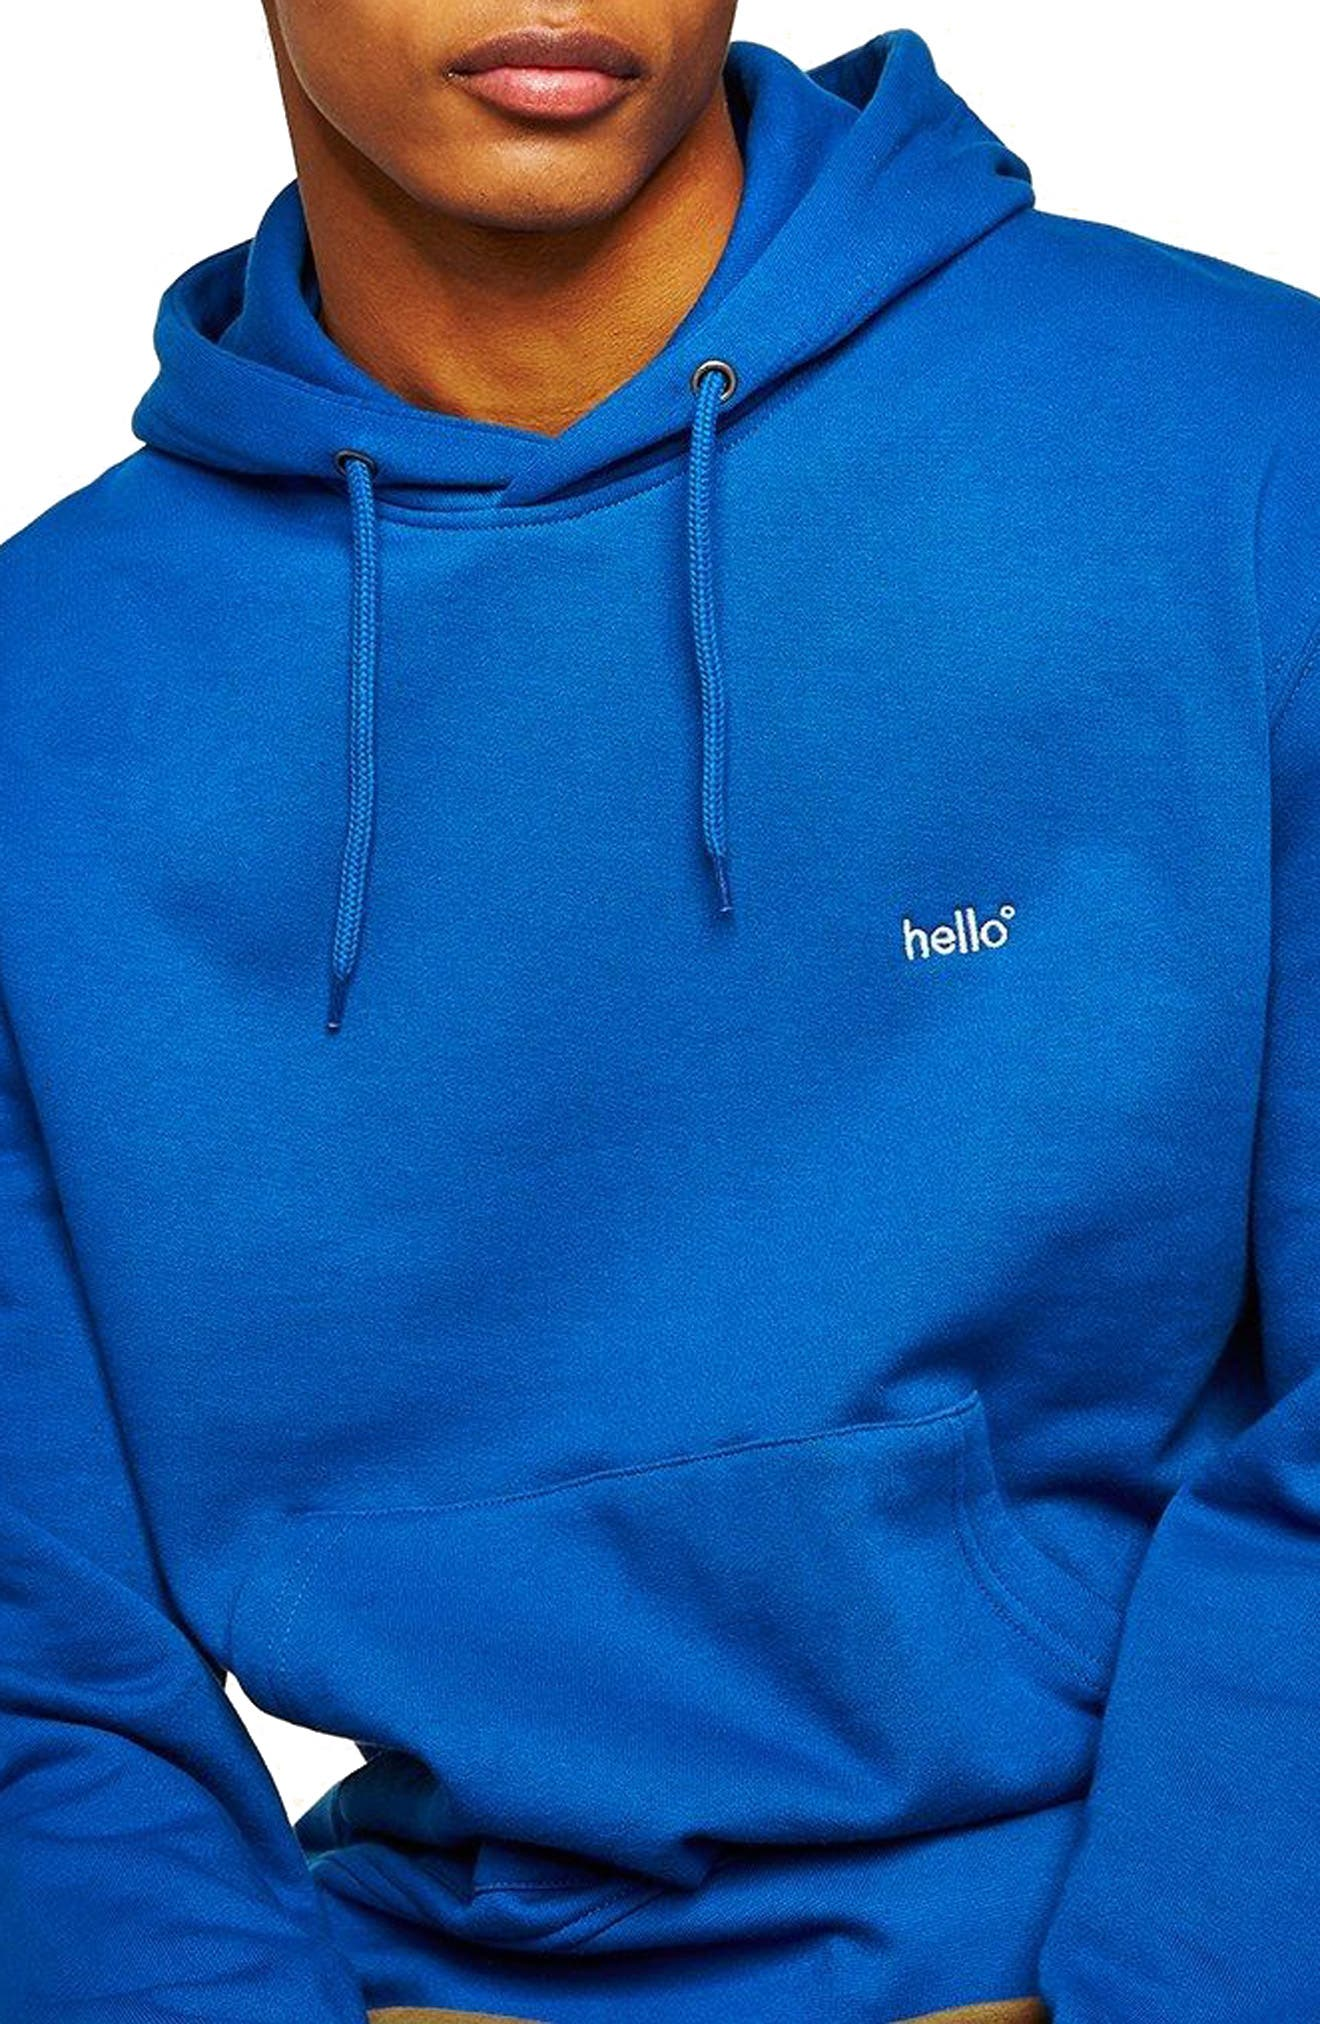 Classic Fit Tristan Hello Embroidered Hoodie,                             Main thumbnail 1, color,                             Blue Multi